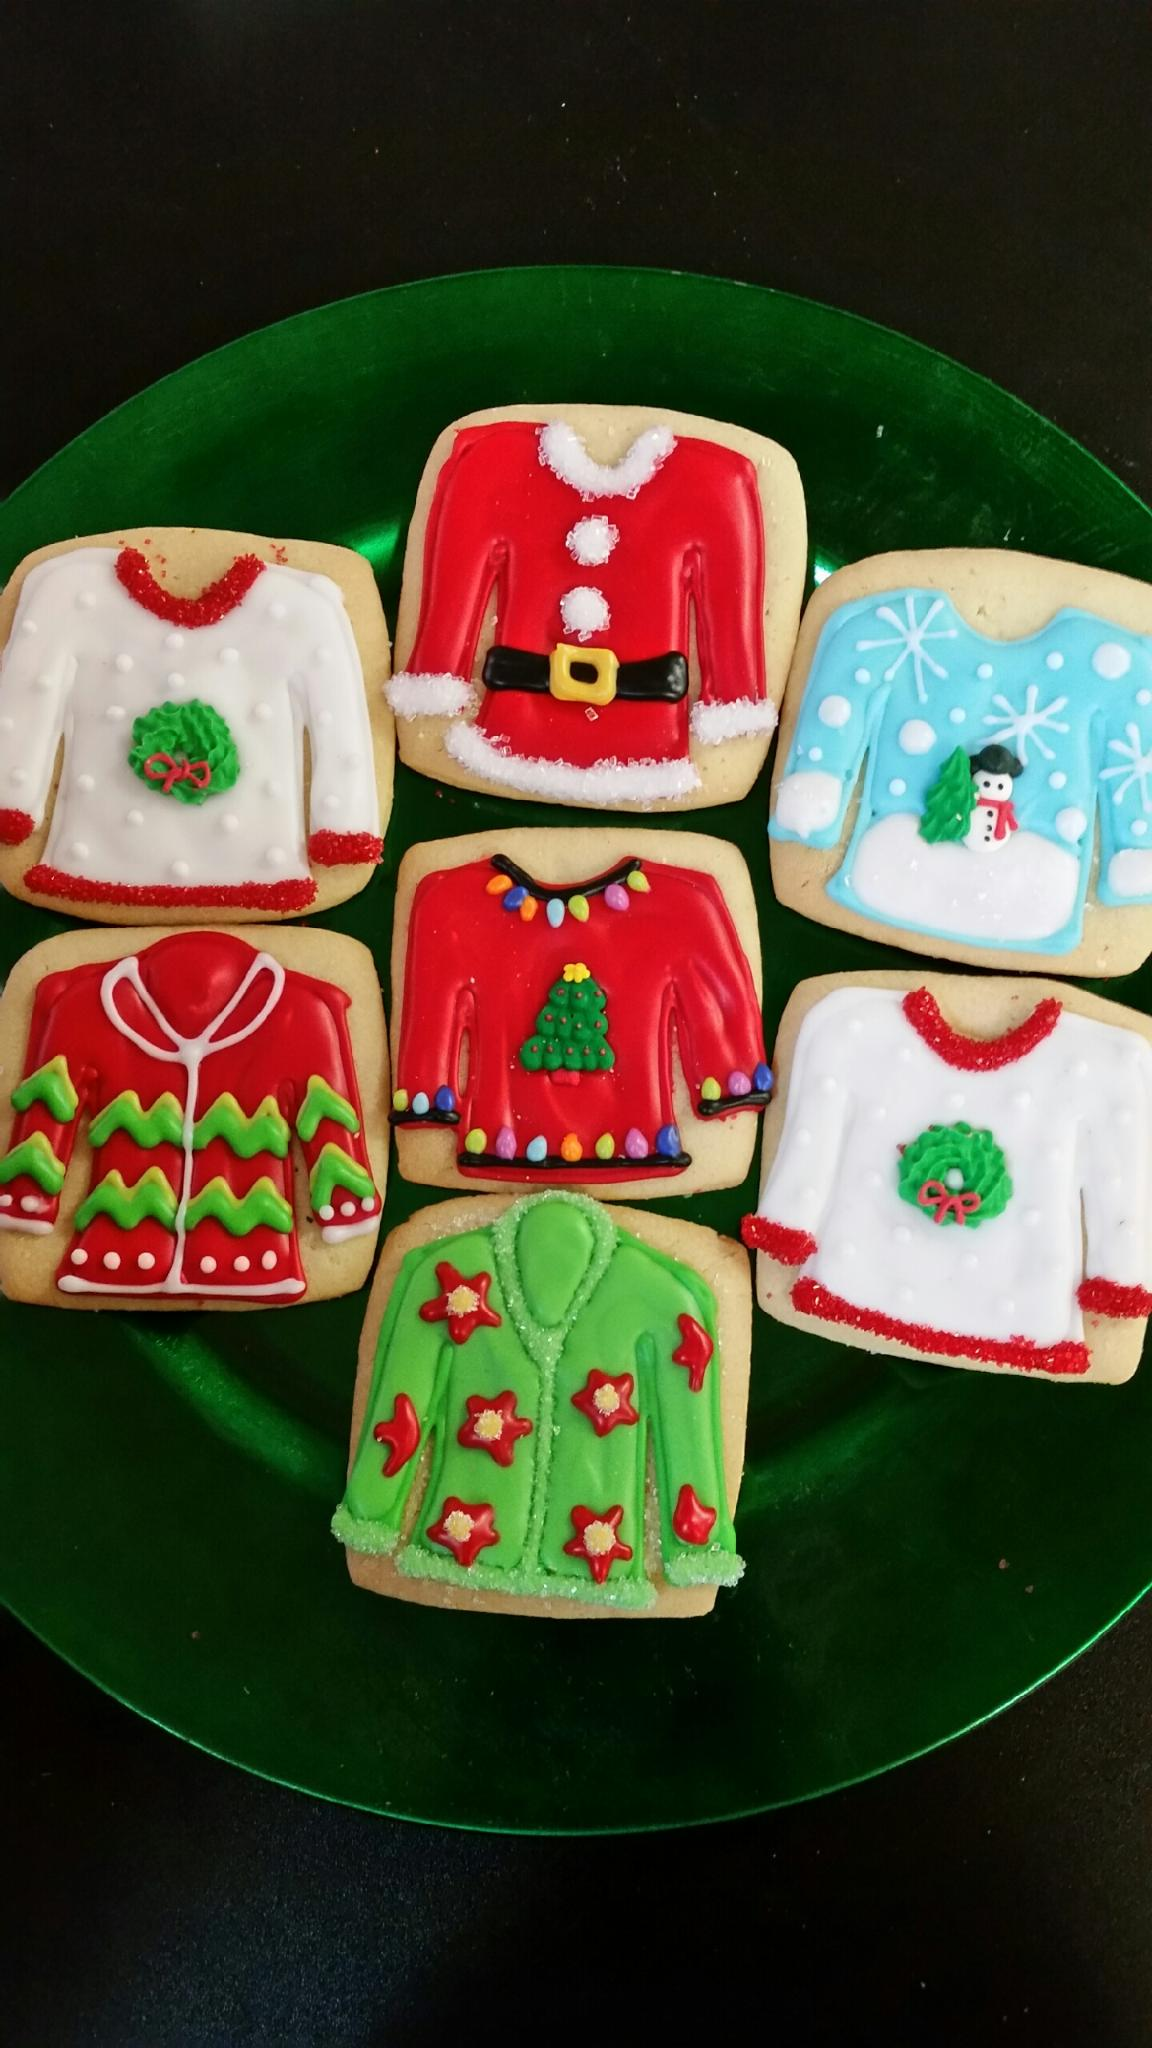 Assorted Christmas Ugly Sweater Decorated Cookies